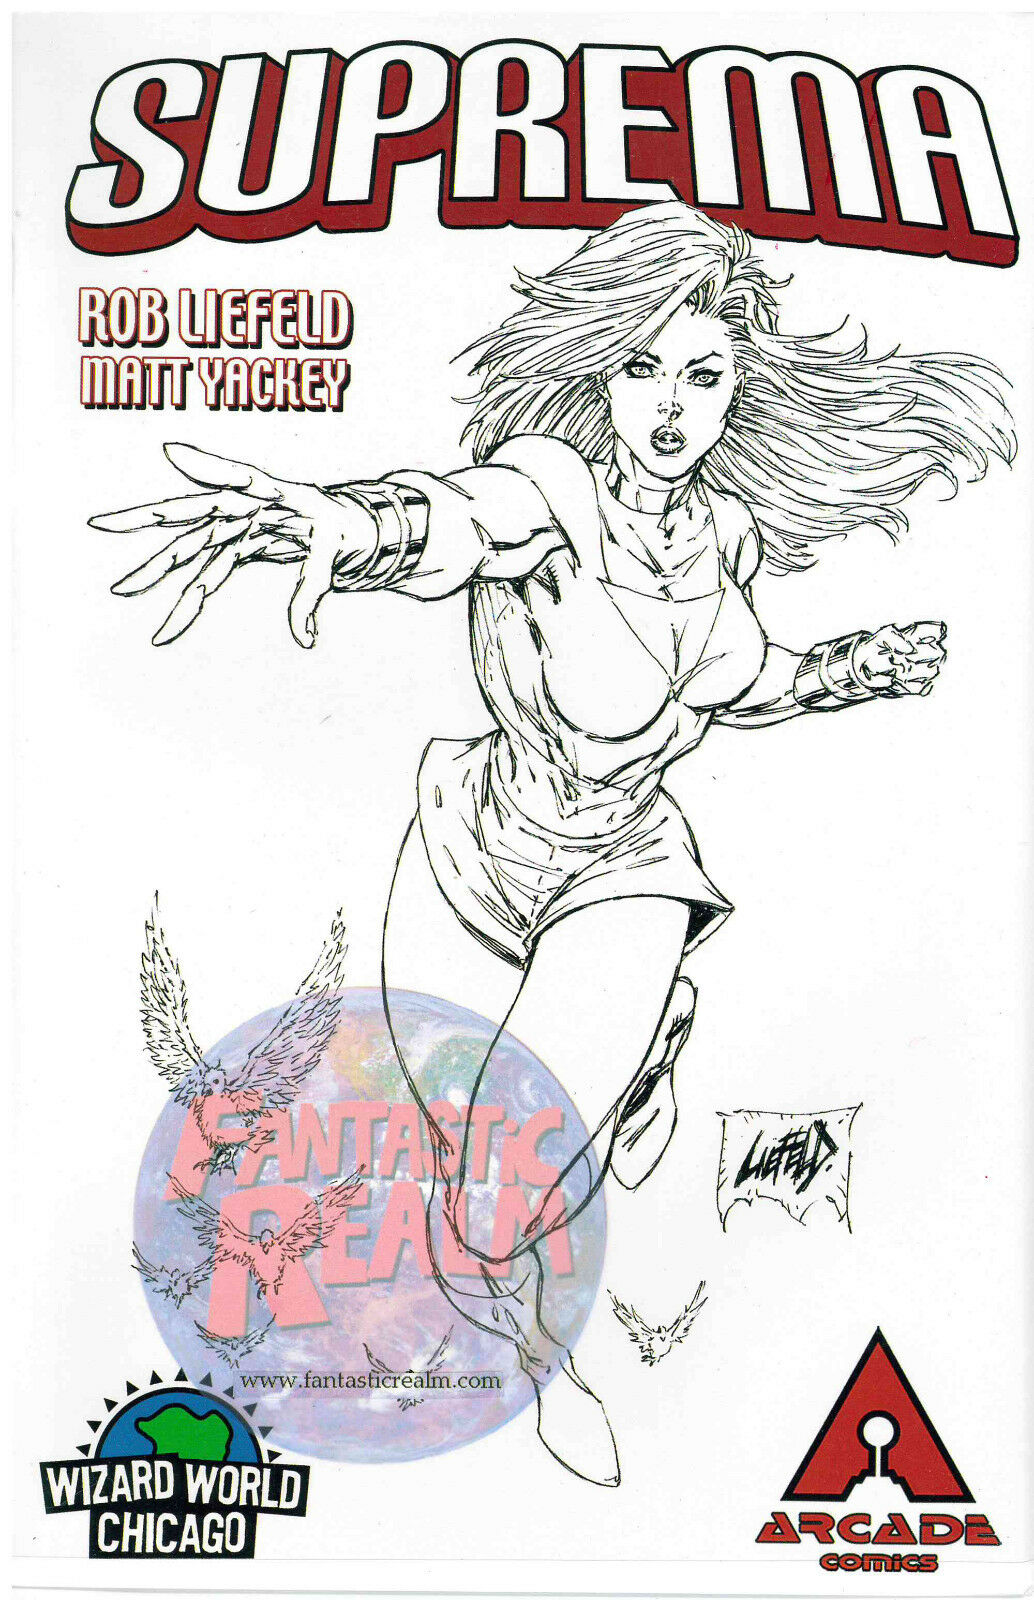 SUPREMA WIZARD WORLD CHICAGO LIMITED EDITION 2006 Arcade Rob Liefeld